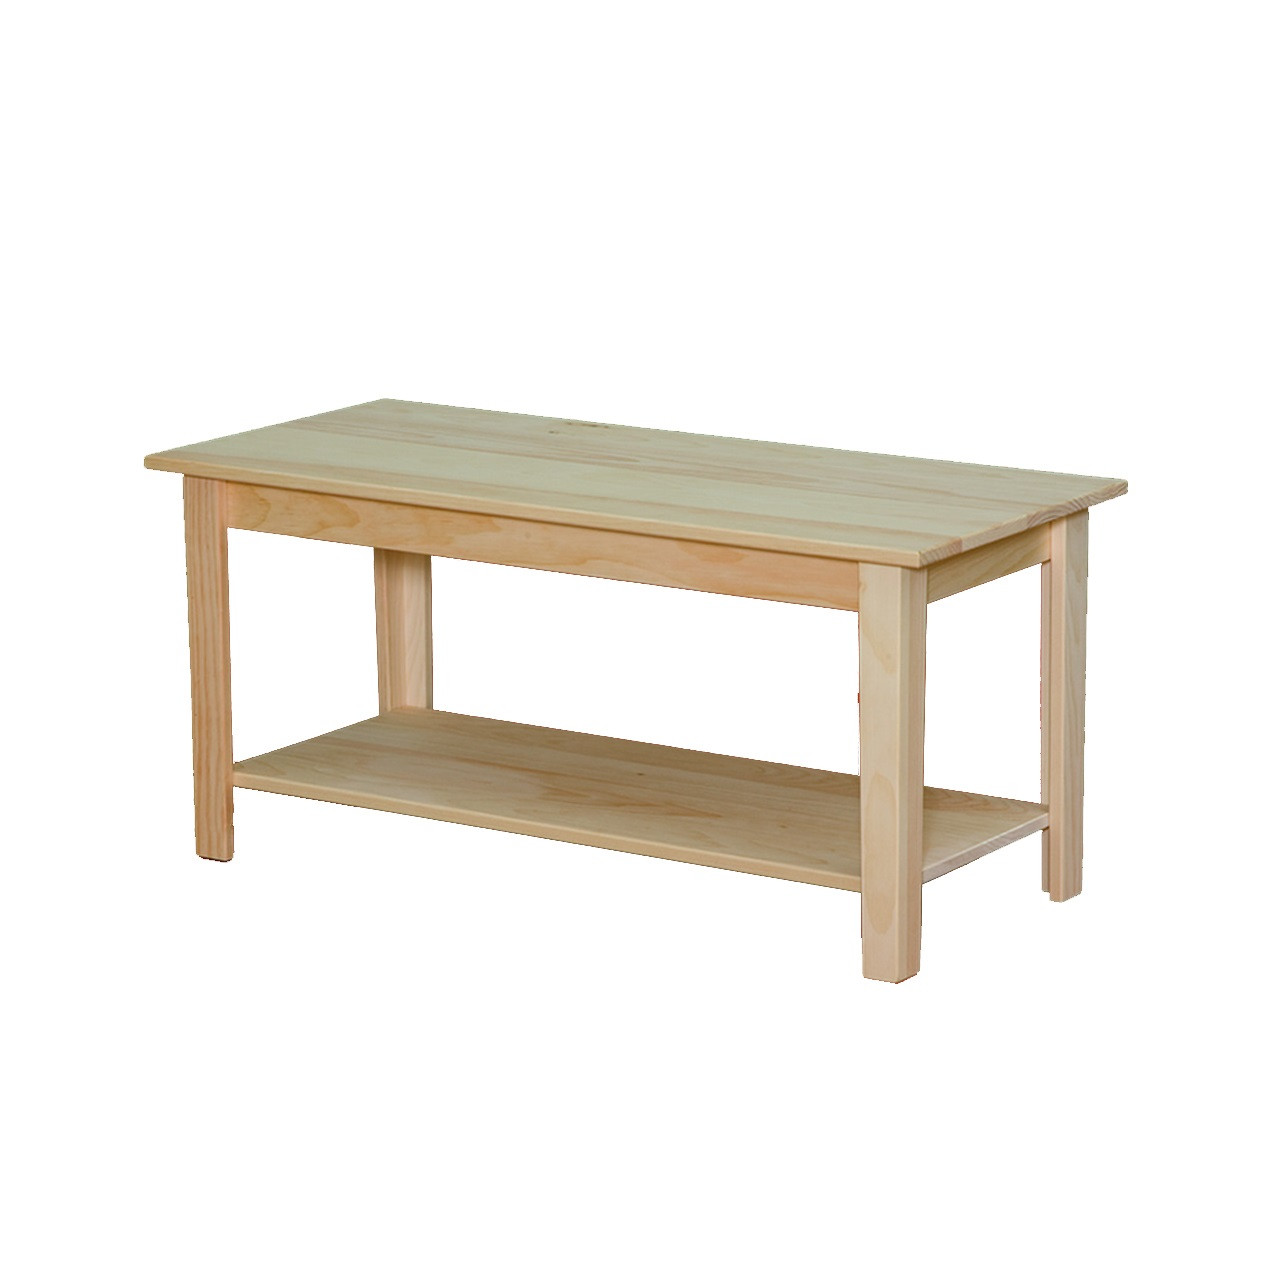 Swell Coffee Table With Shelf Gmtry Best Dining Table And Chair Ideas Images Gmtryco